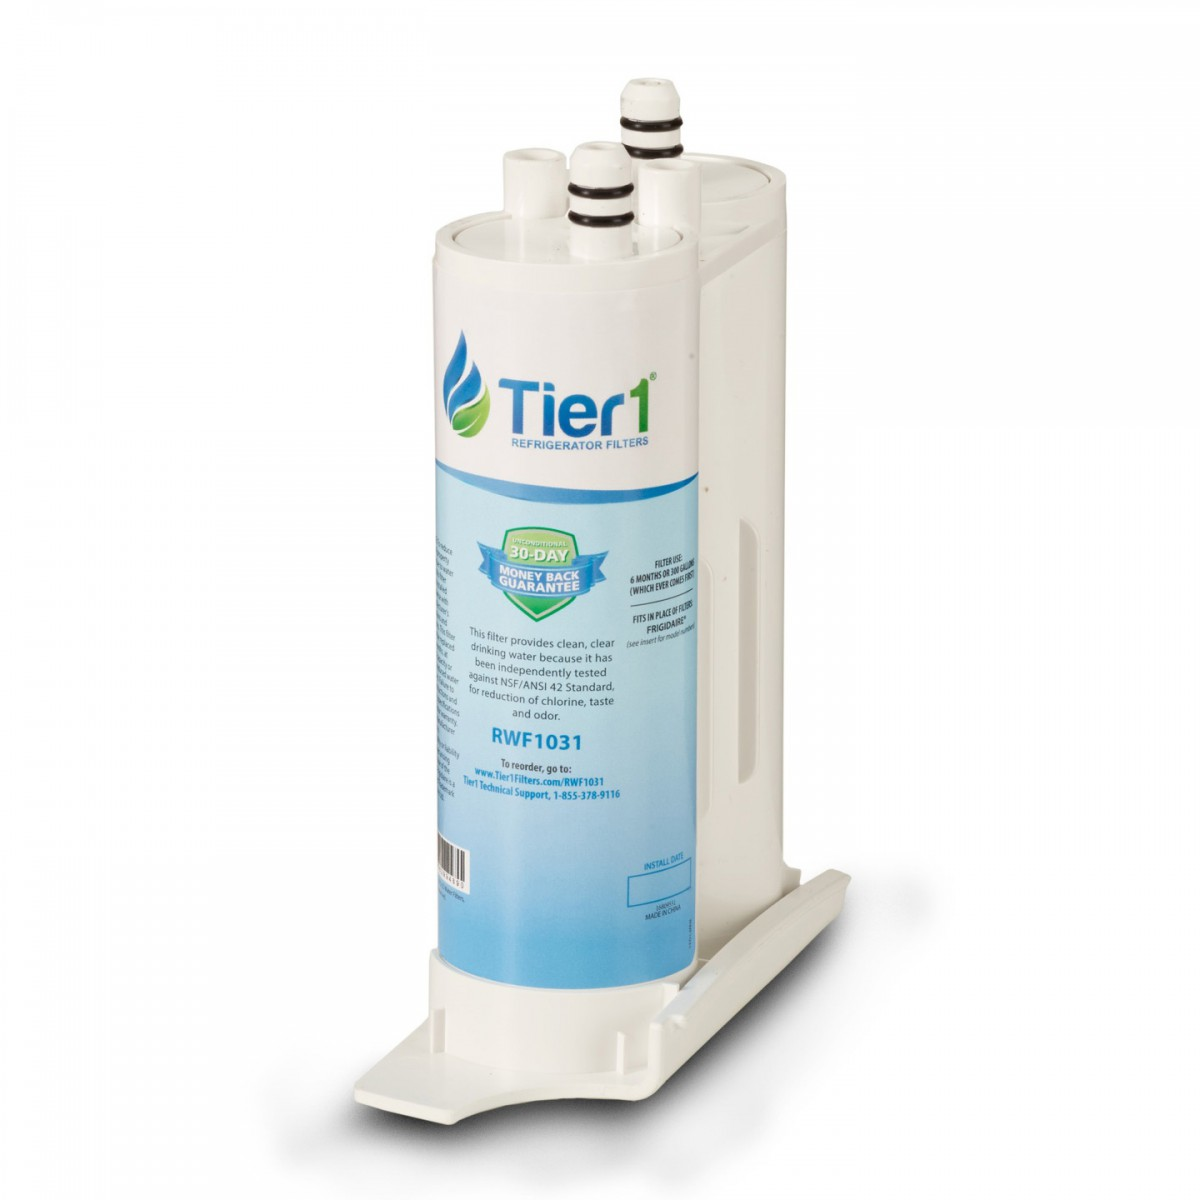 kenmore ngfc 2000. 69625-ct-001 replacement refrigerator water filter by tier1 kenmore ngfc 2000 r